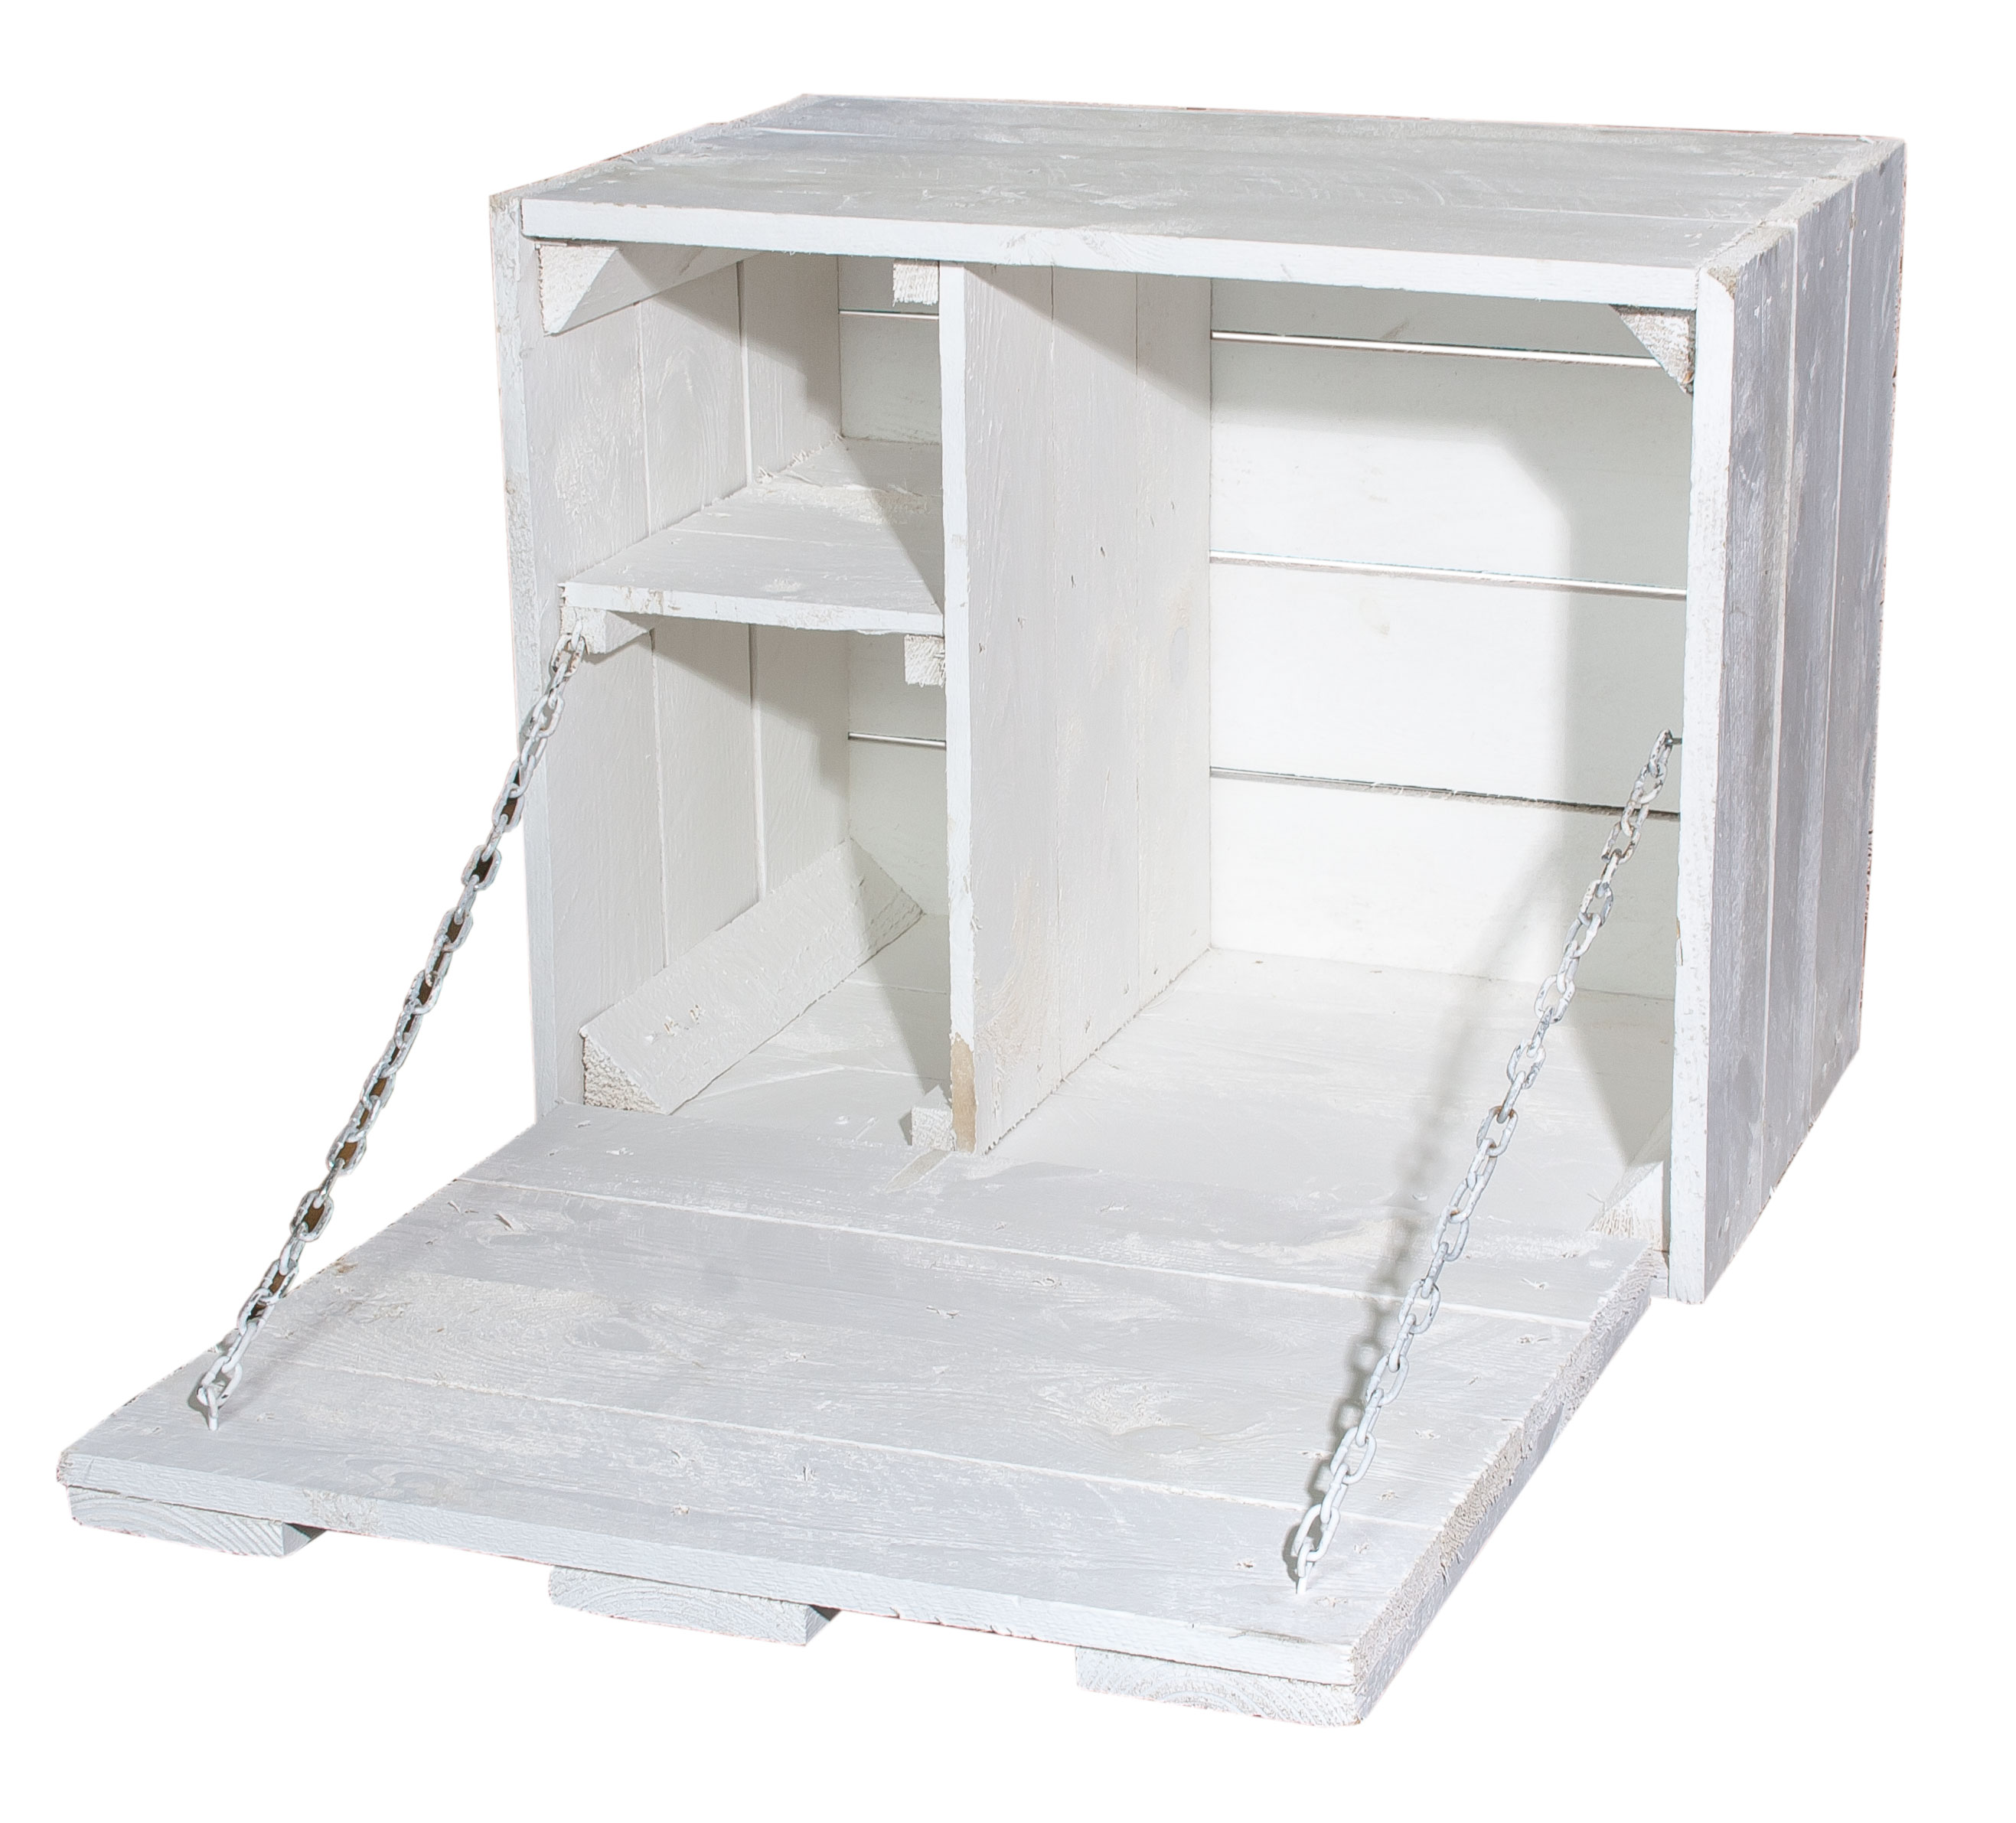 Weinkisten Shop chests small white wallwork with associated work area 51x41x31cm